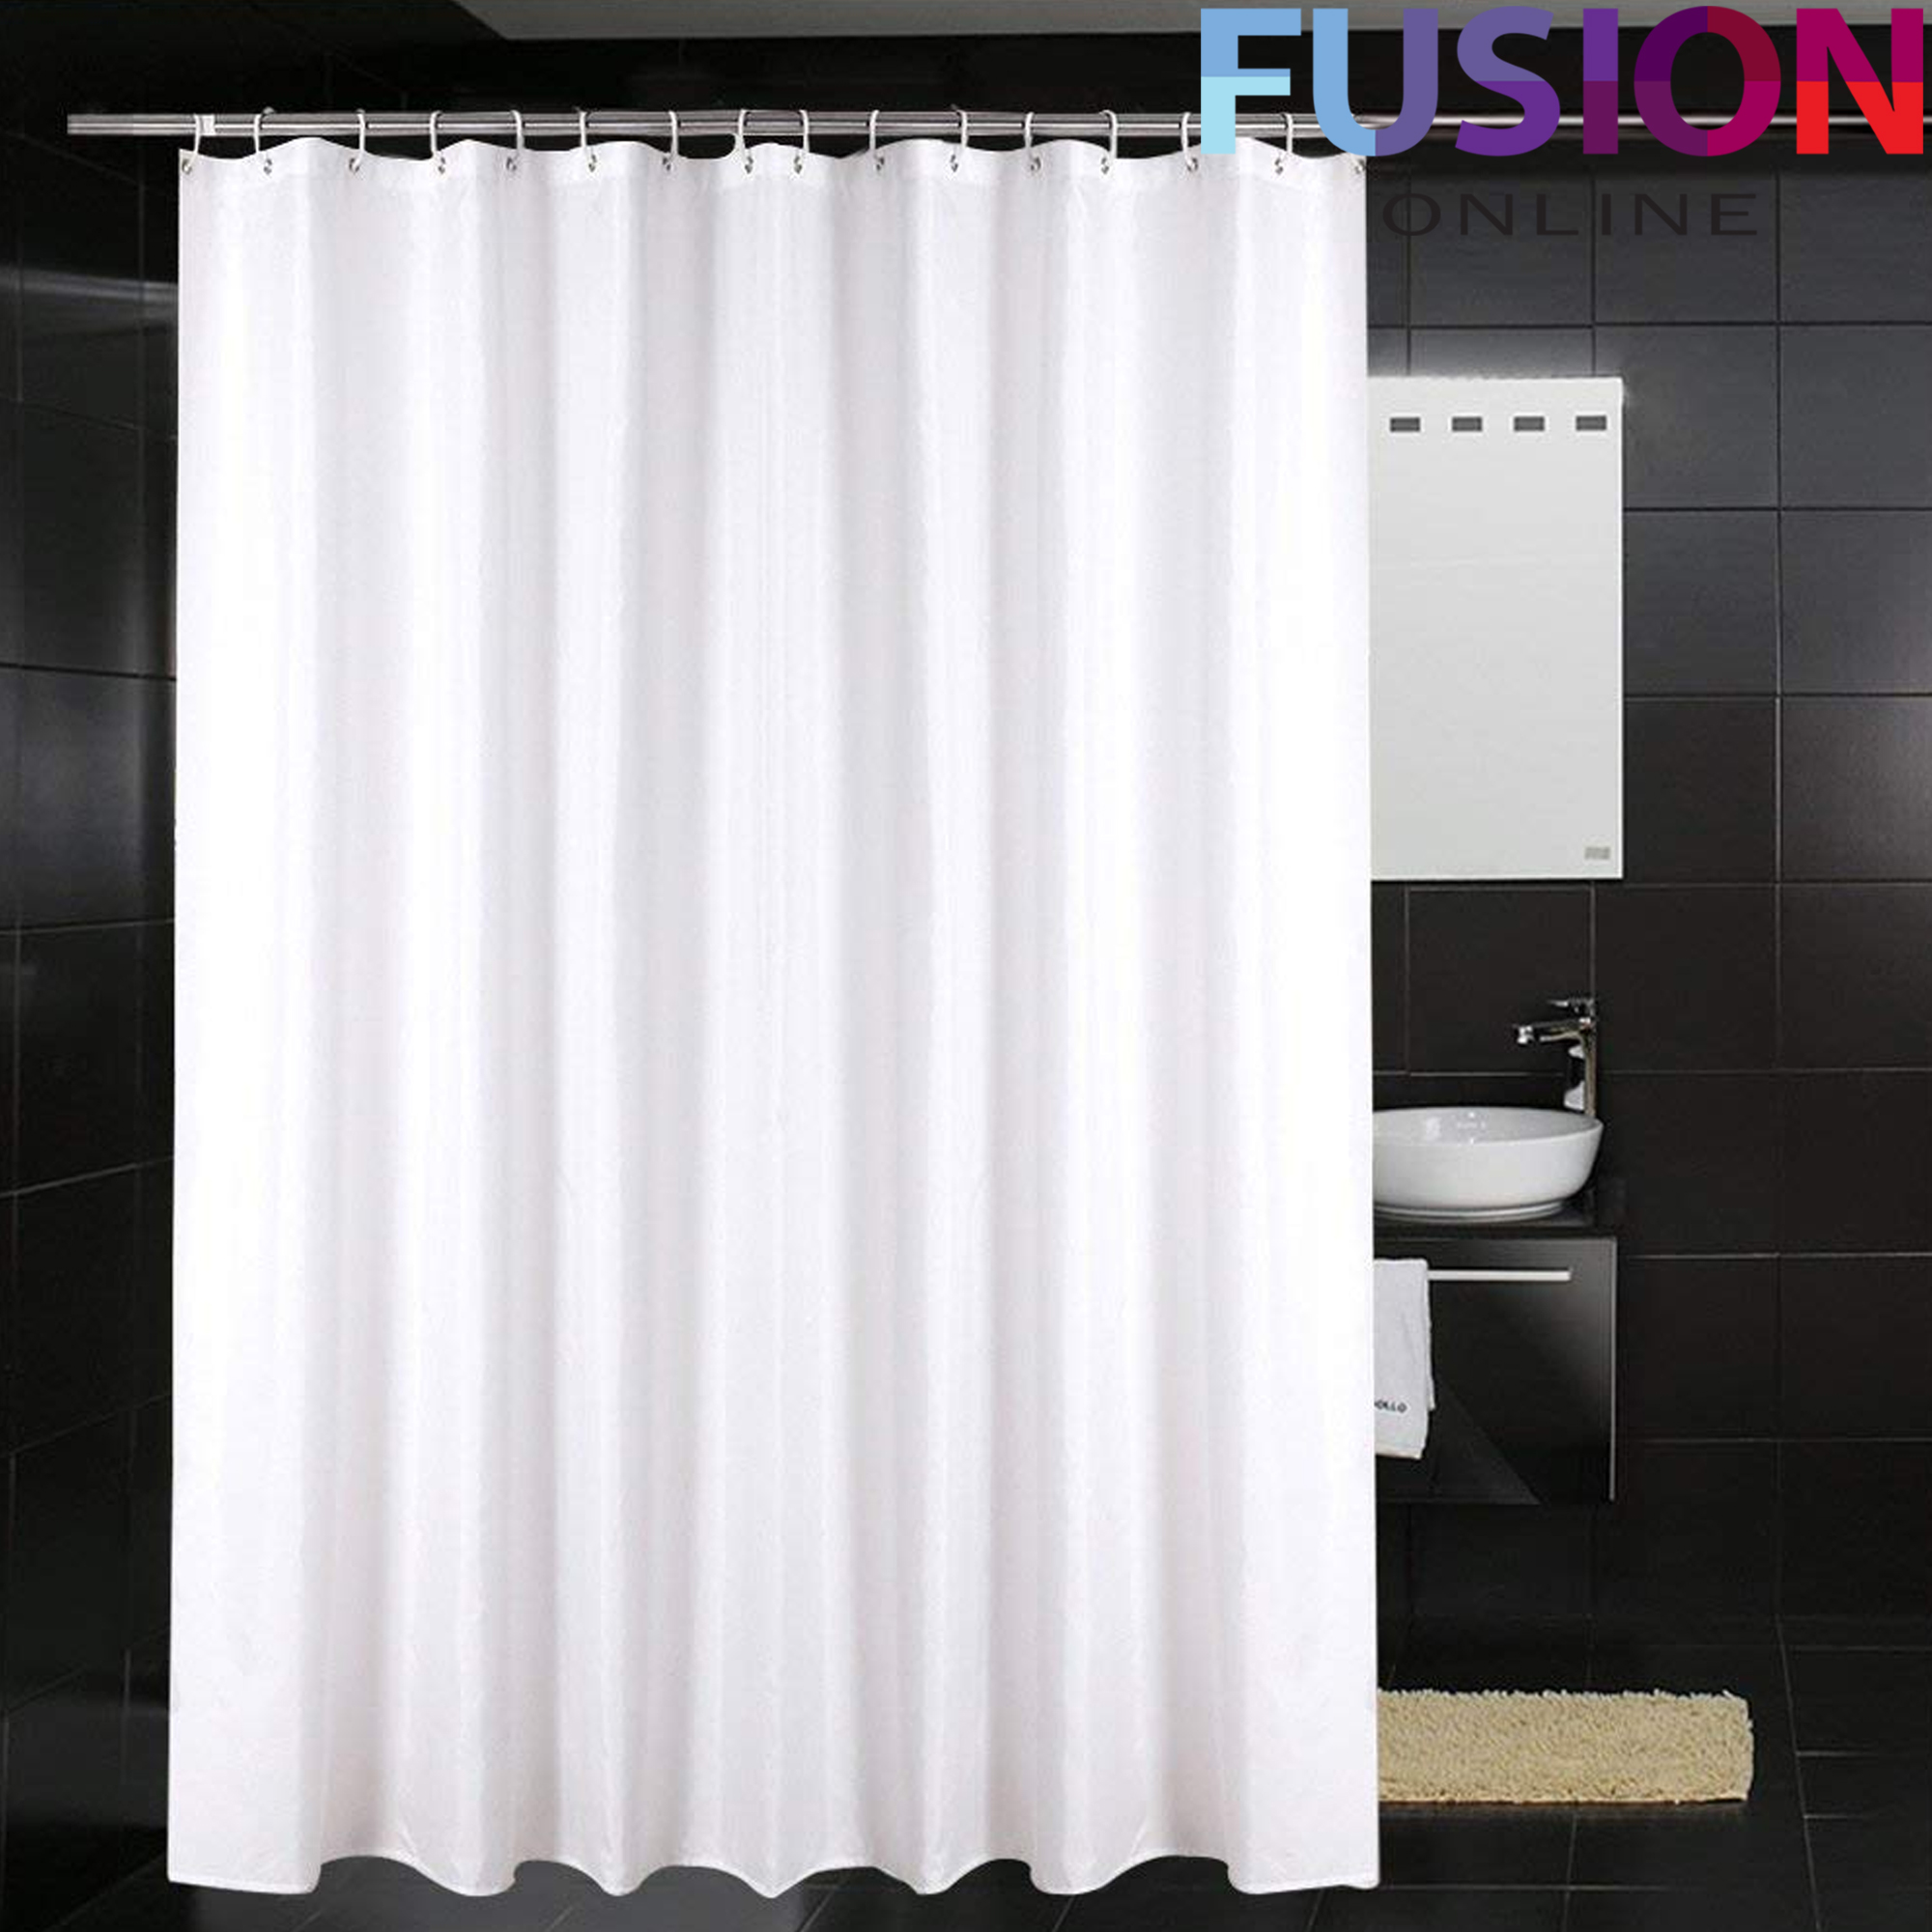 Details About Shower Curtain Bath Bathroom Waterproof 180 X 180 Cm Plain White With 12 Hooks